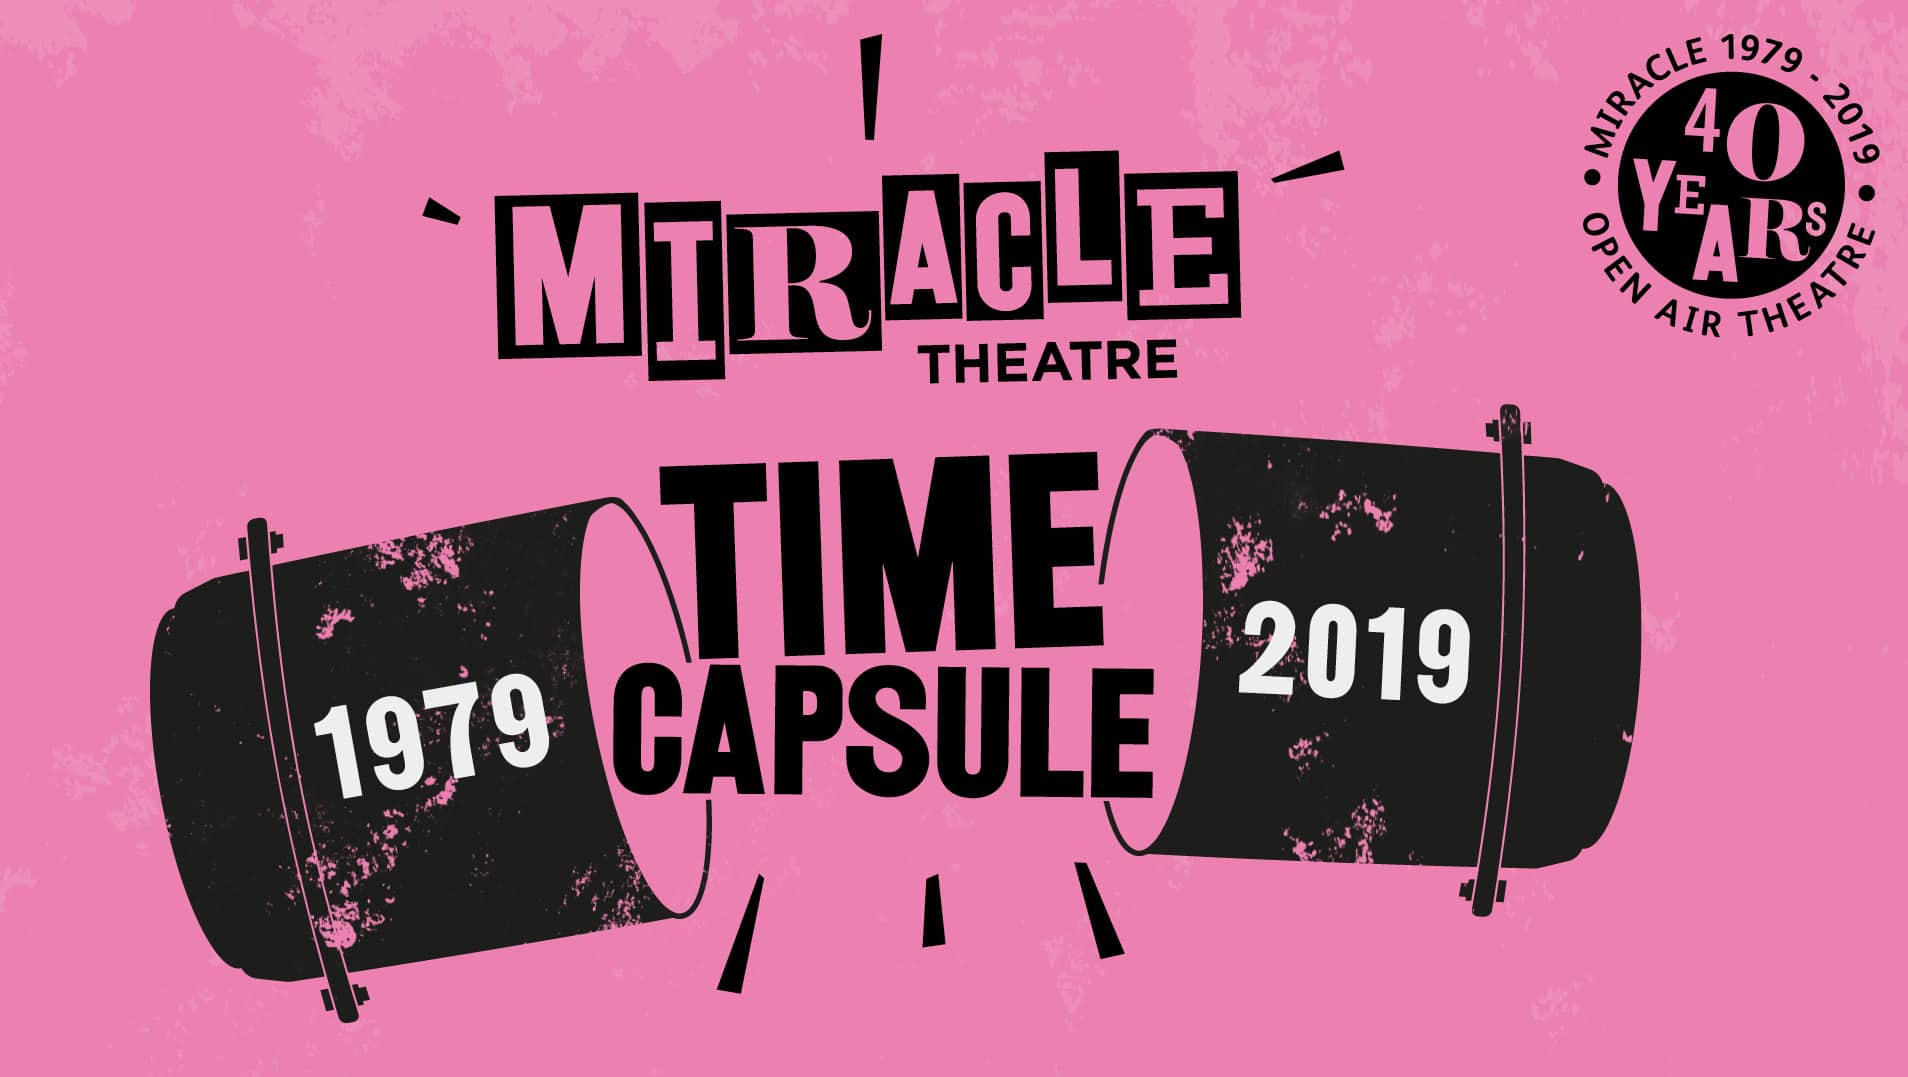 Our Time Capsule Exhibition celebrating 40 years of Miracle Theatre opens at Falmouth Art Gallery on 23rd November!